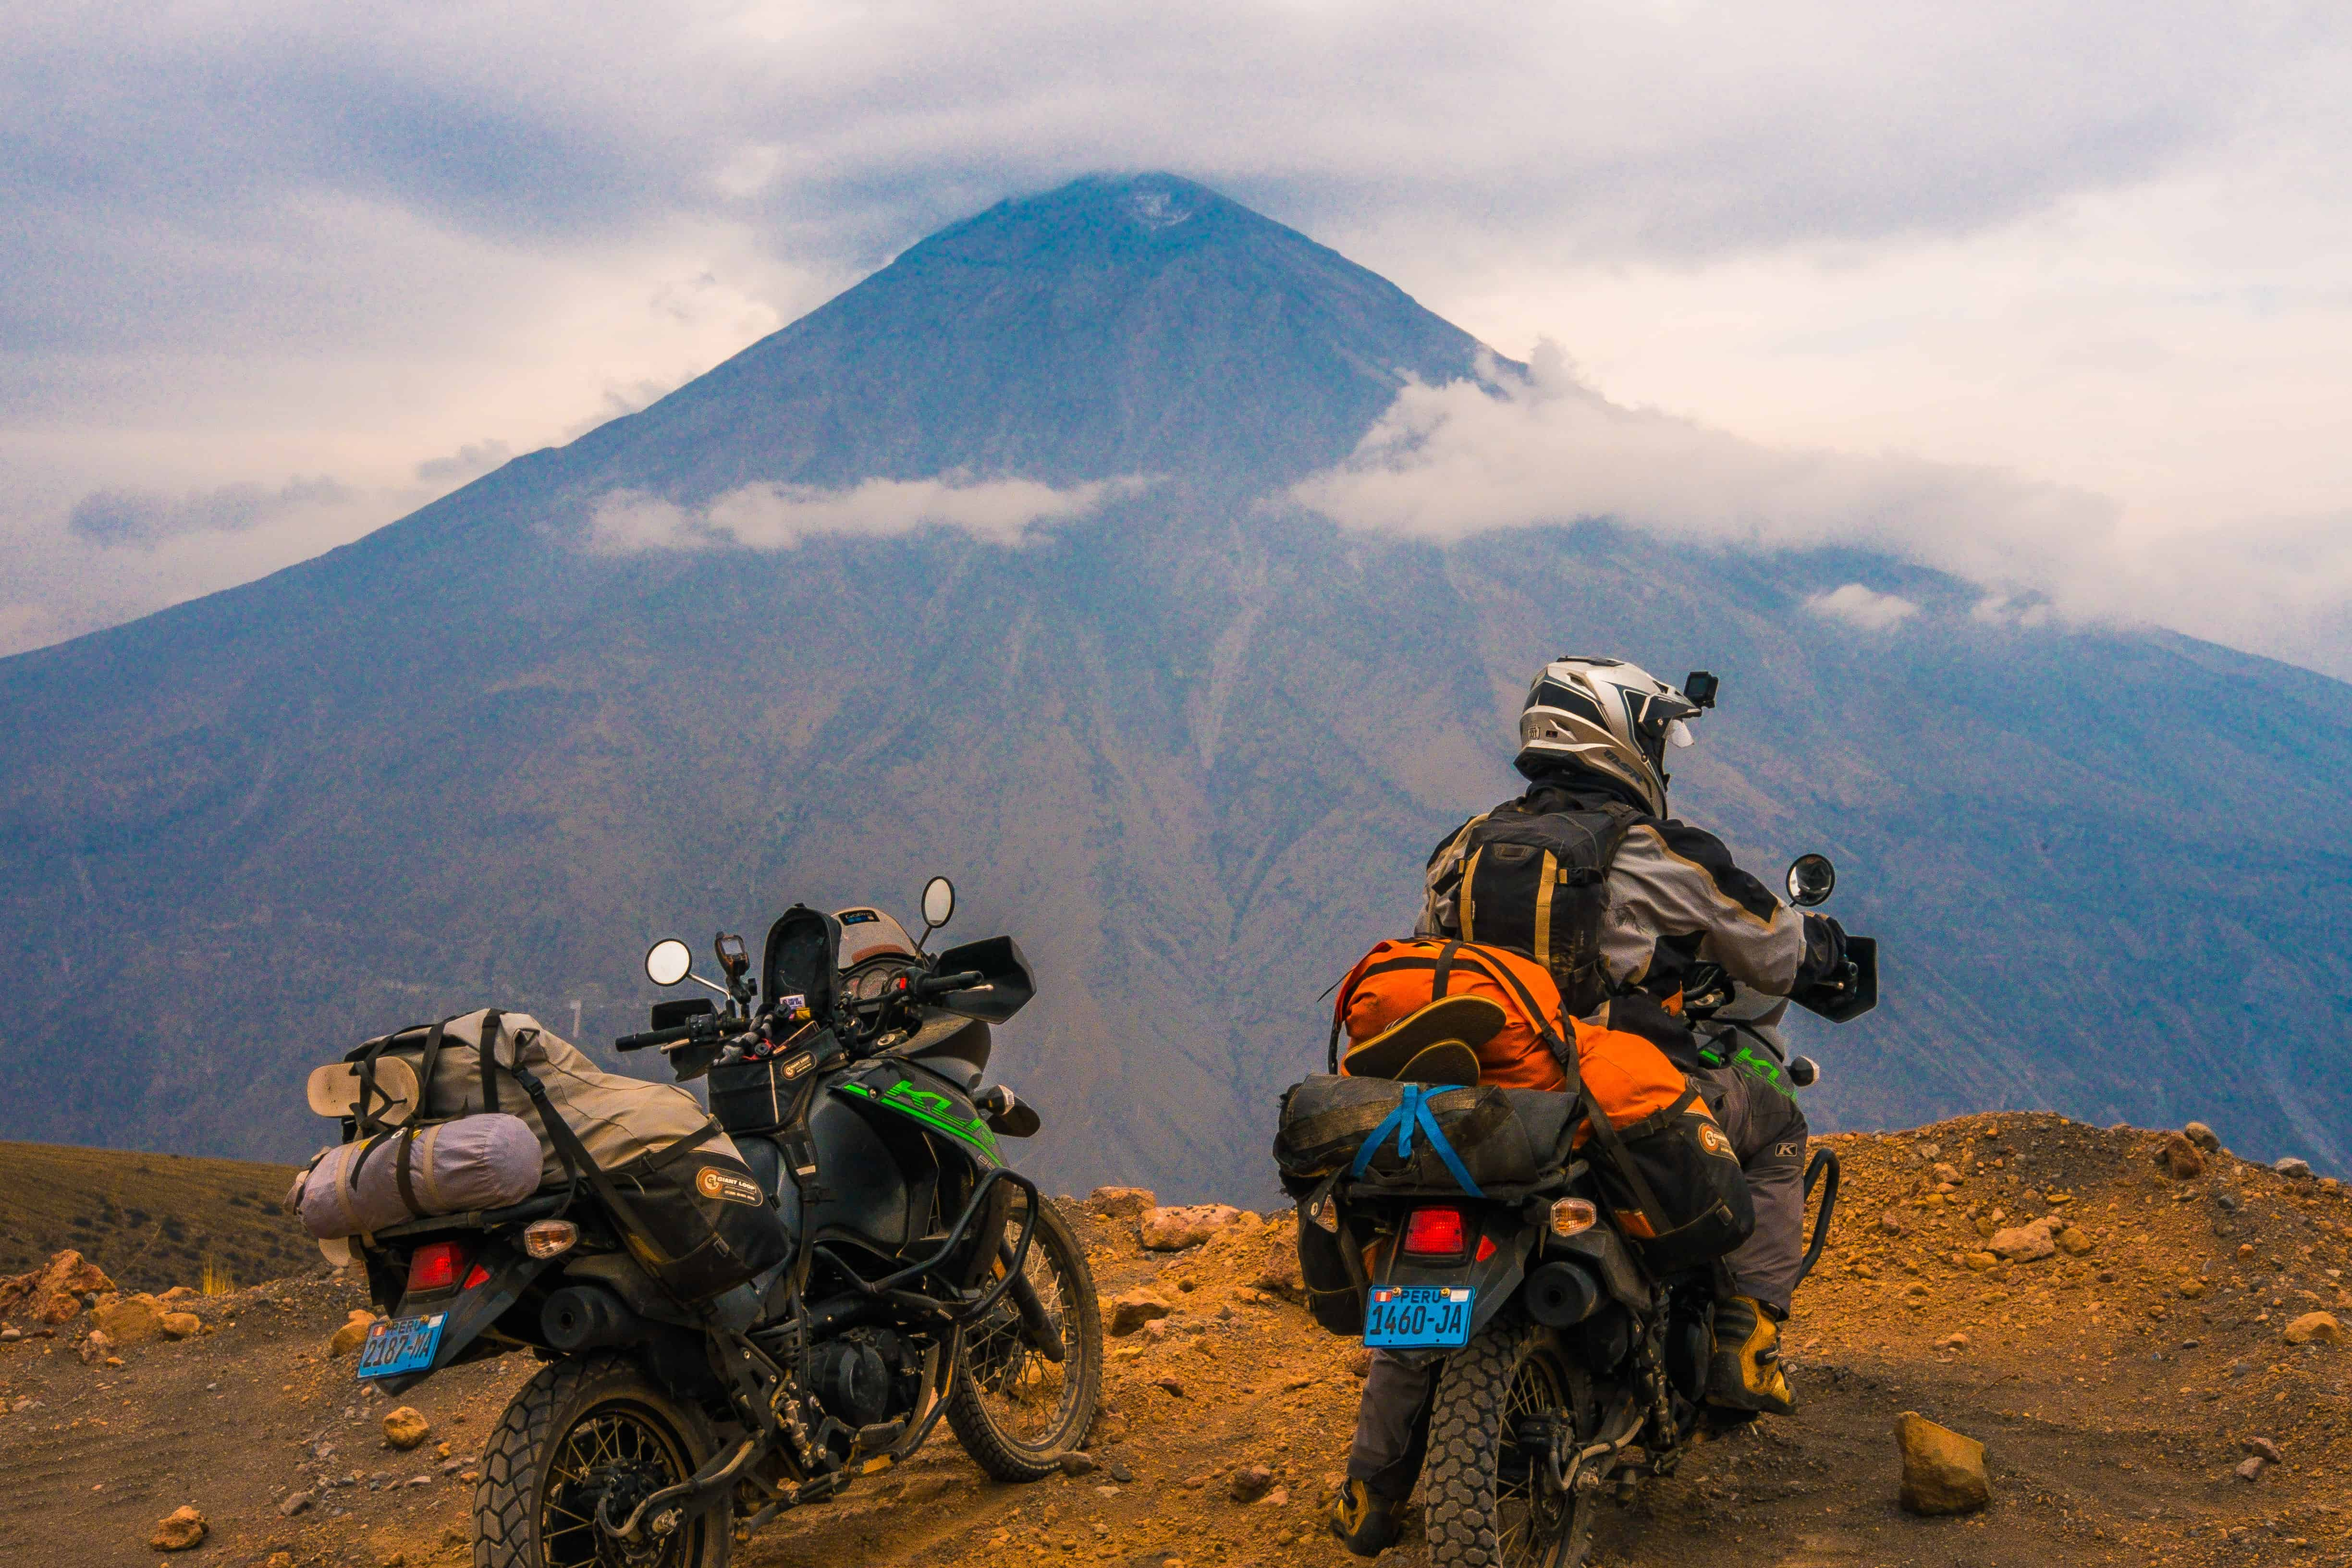 motorcycles next to a mountain in the andes